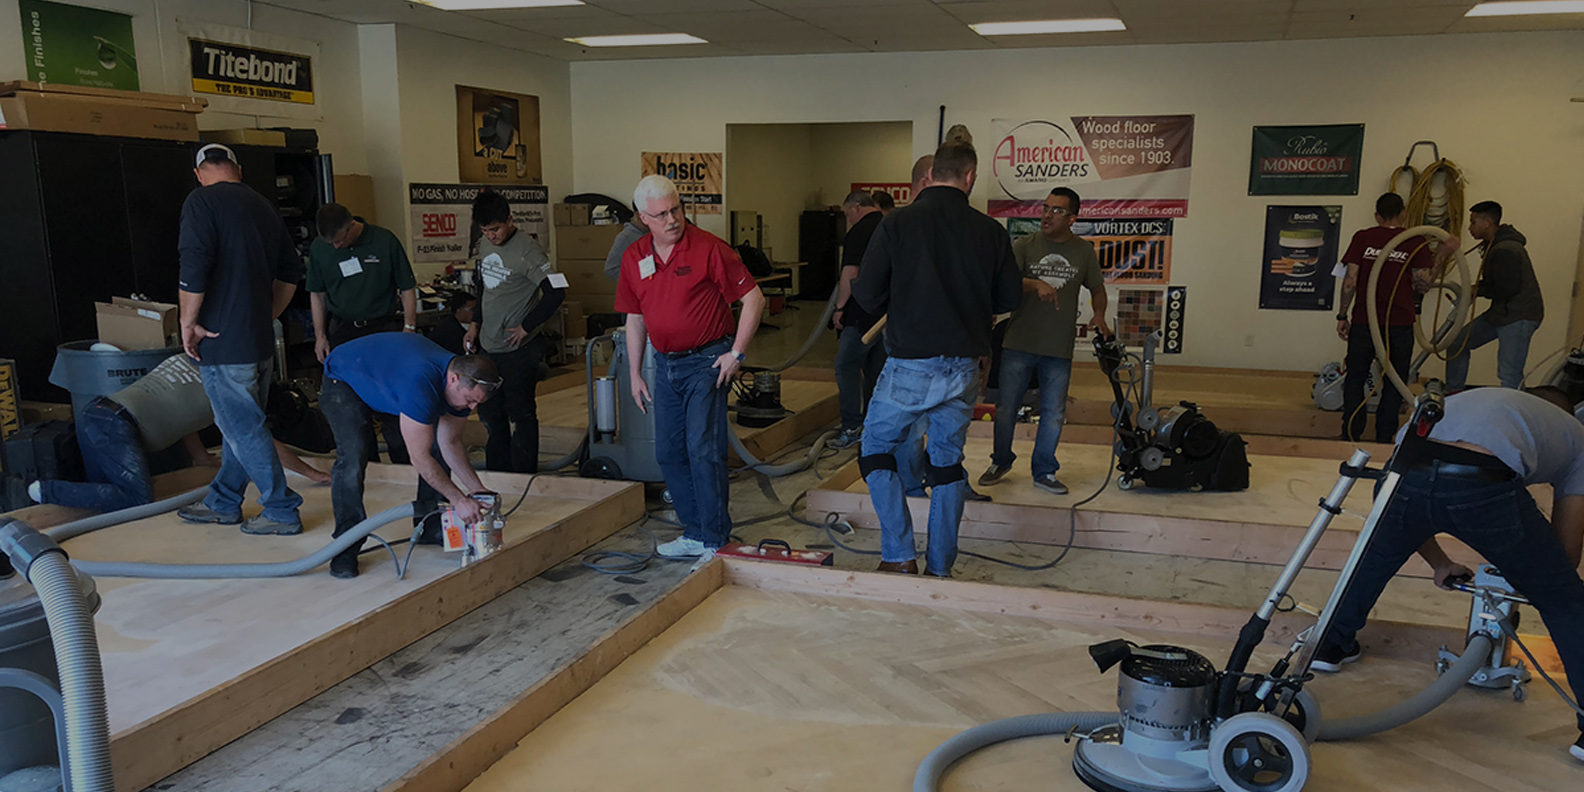 Training - From BASIC TRAINING to advanced Techniques, we OFFER TRAINING THAT HELPS keep our customers at the forefront of THE INDUSTRY.